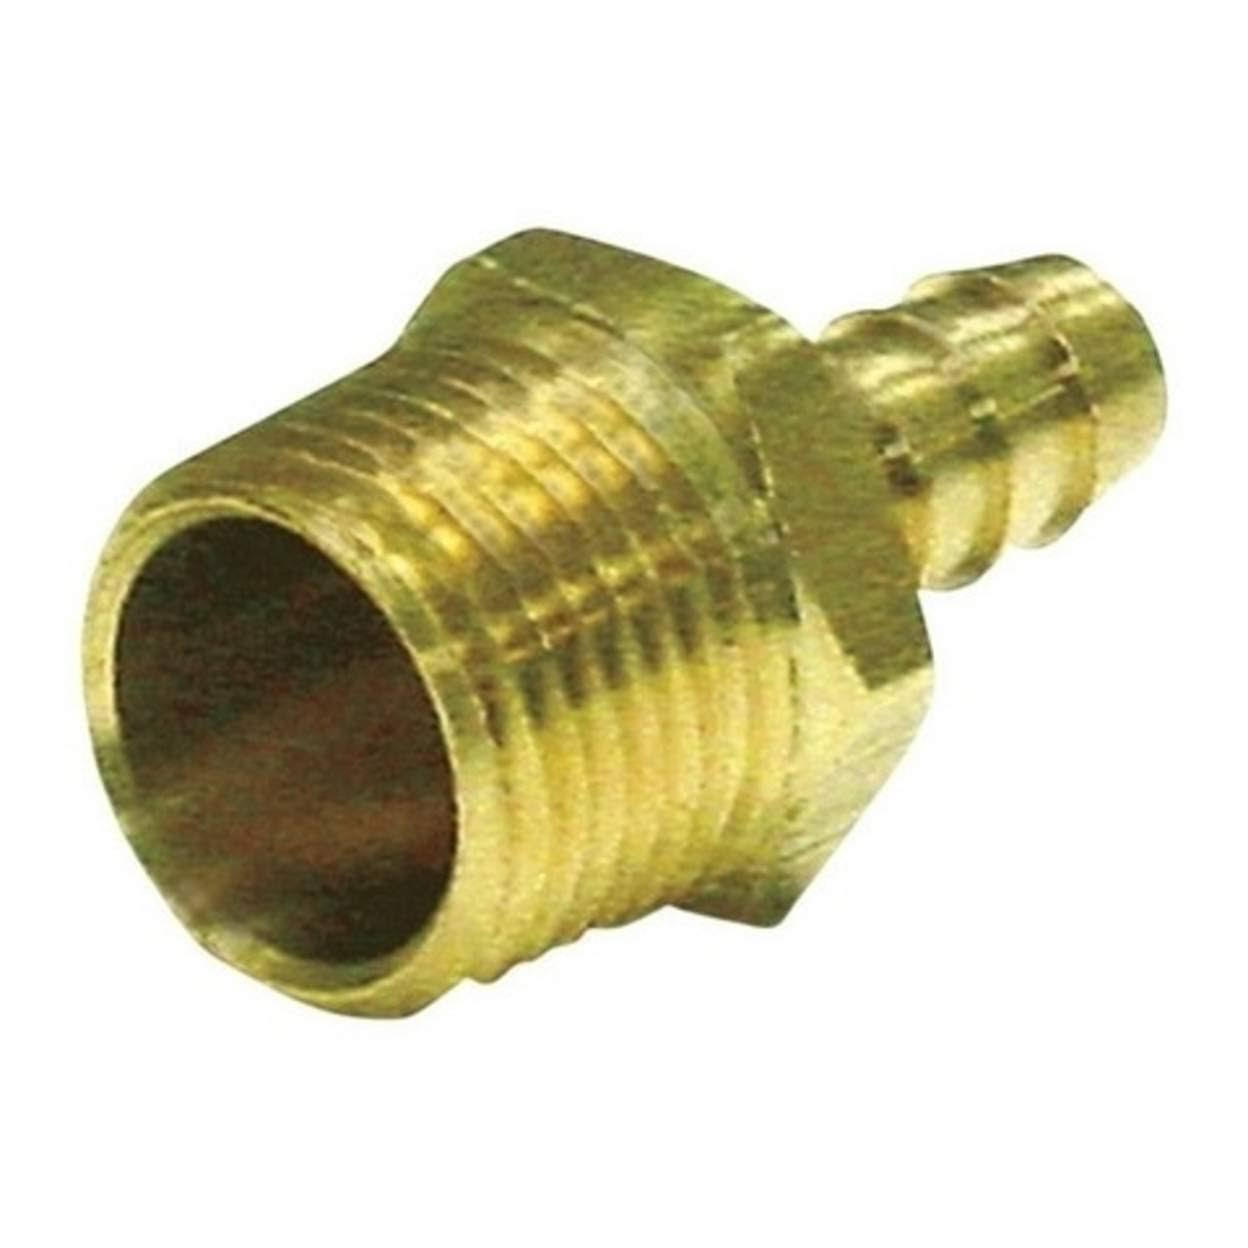 "JMF Hose Barb - Yellow Brass, 5/8"" x 3/8"""